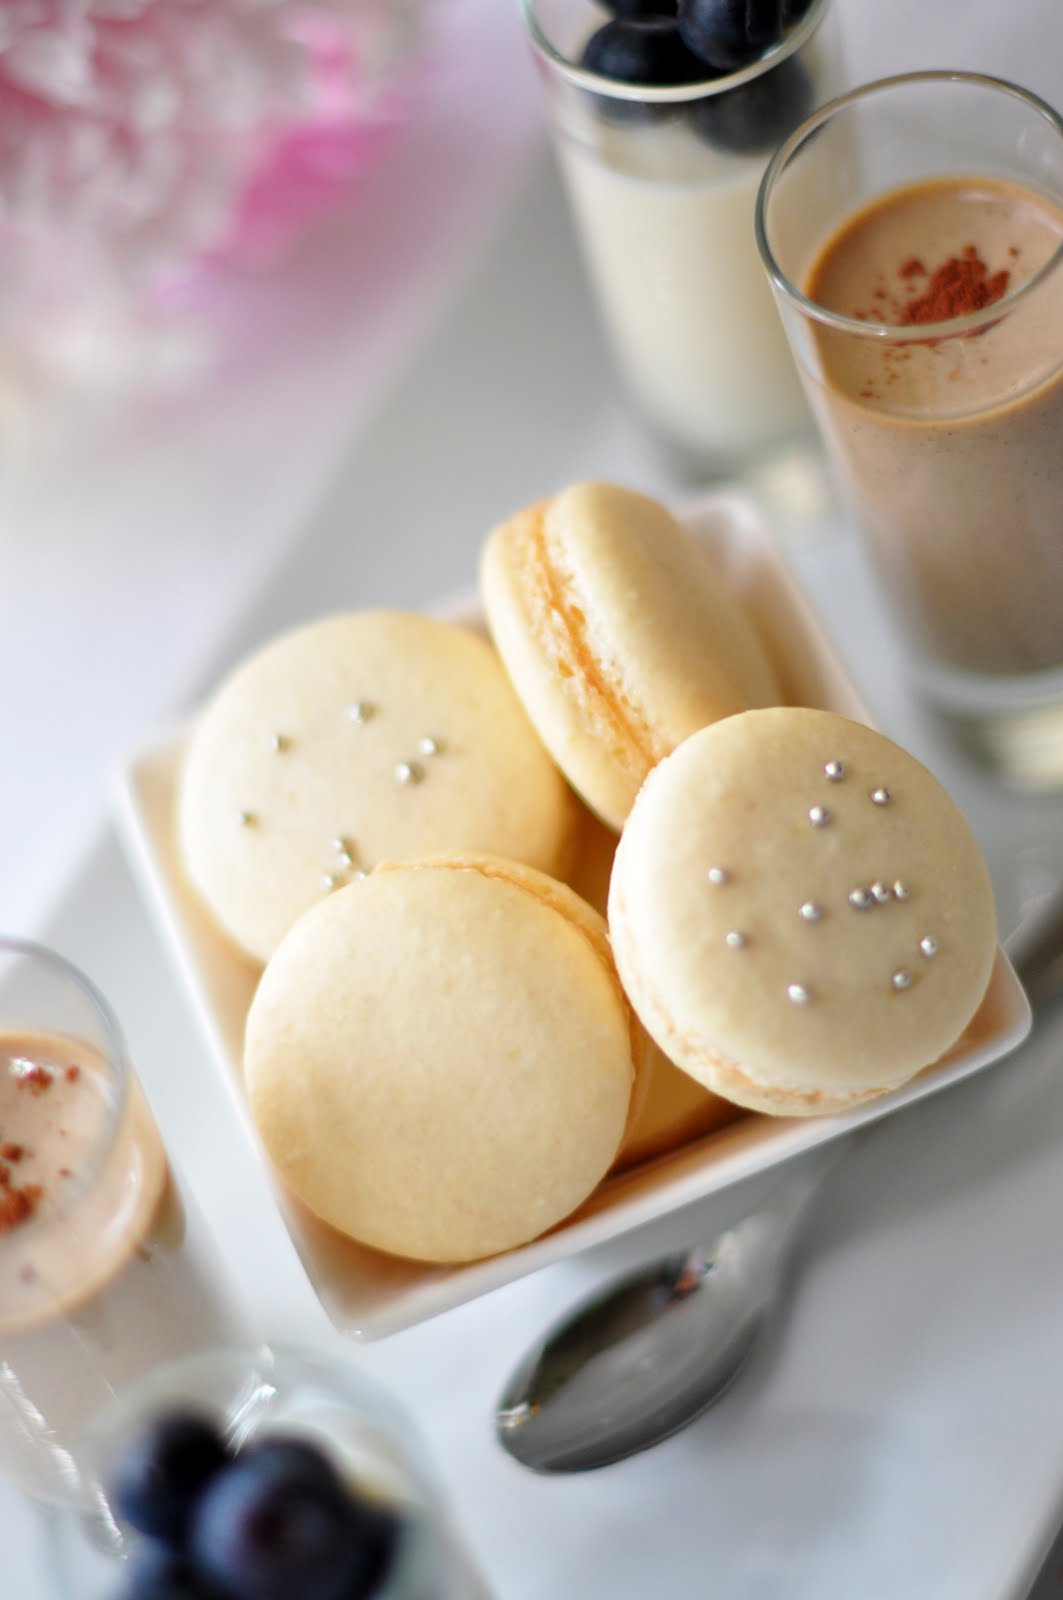 A Wonderful Day Of French Macarons And Panna Cotta Dk Designs